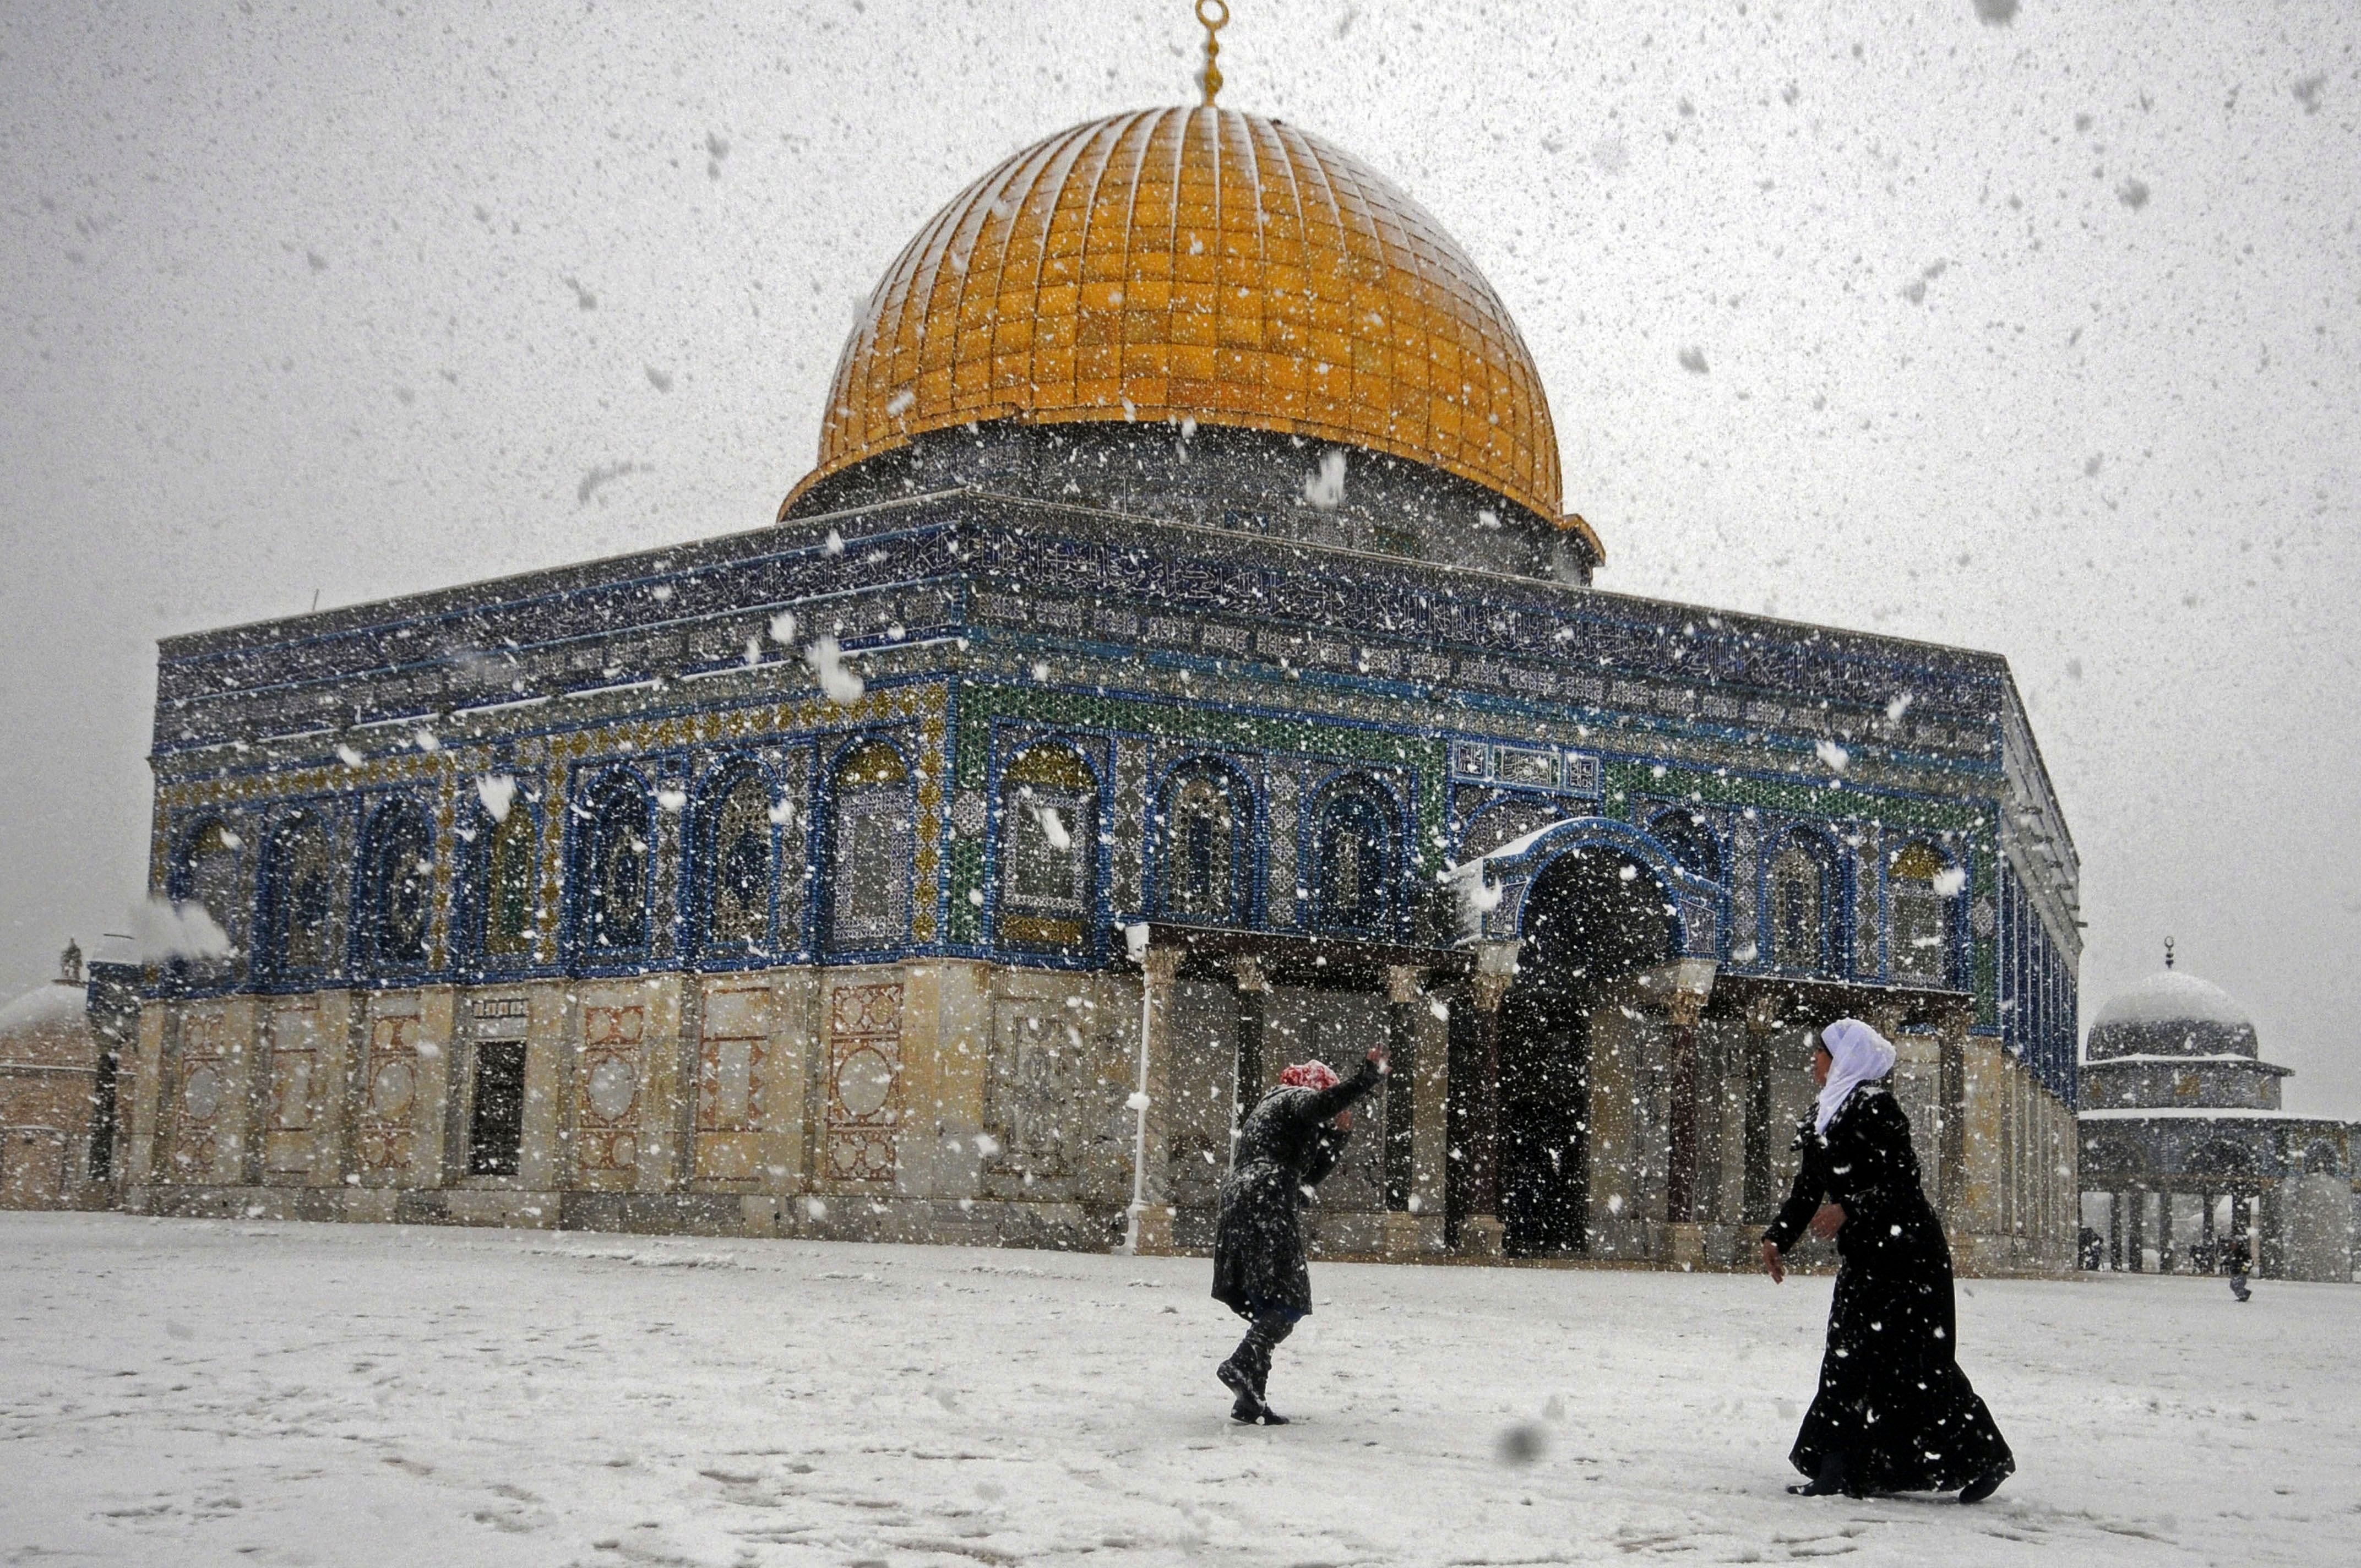 Two Palestinian women play with snow outside Al-Aqsa Mosque in Jerusalem, Dec. 12, 2013.